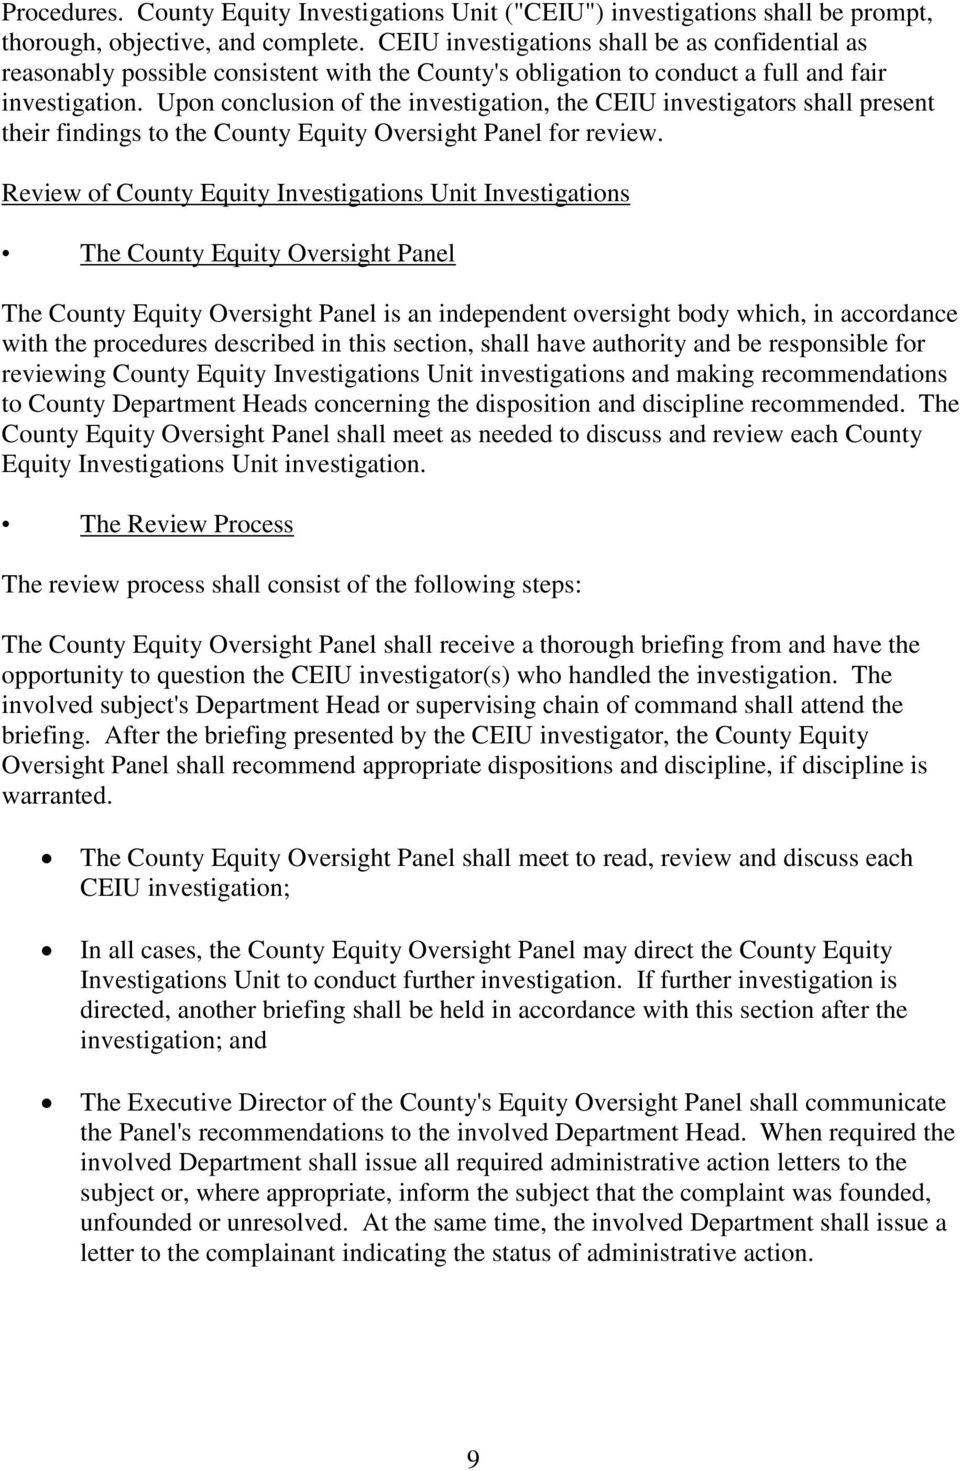 Upon conclusion of the investigation, the CEIU investigators shall present their findings to the County Equity Oversight Panel for review.